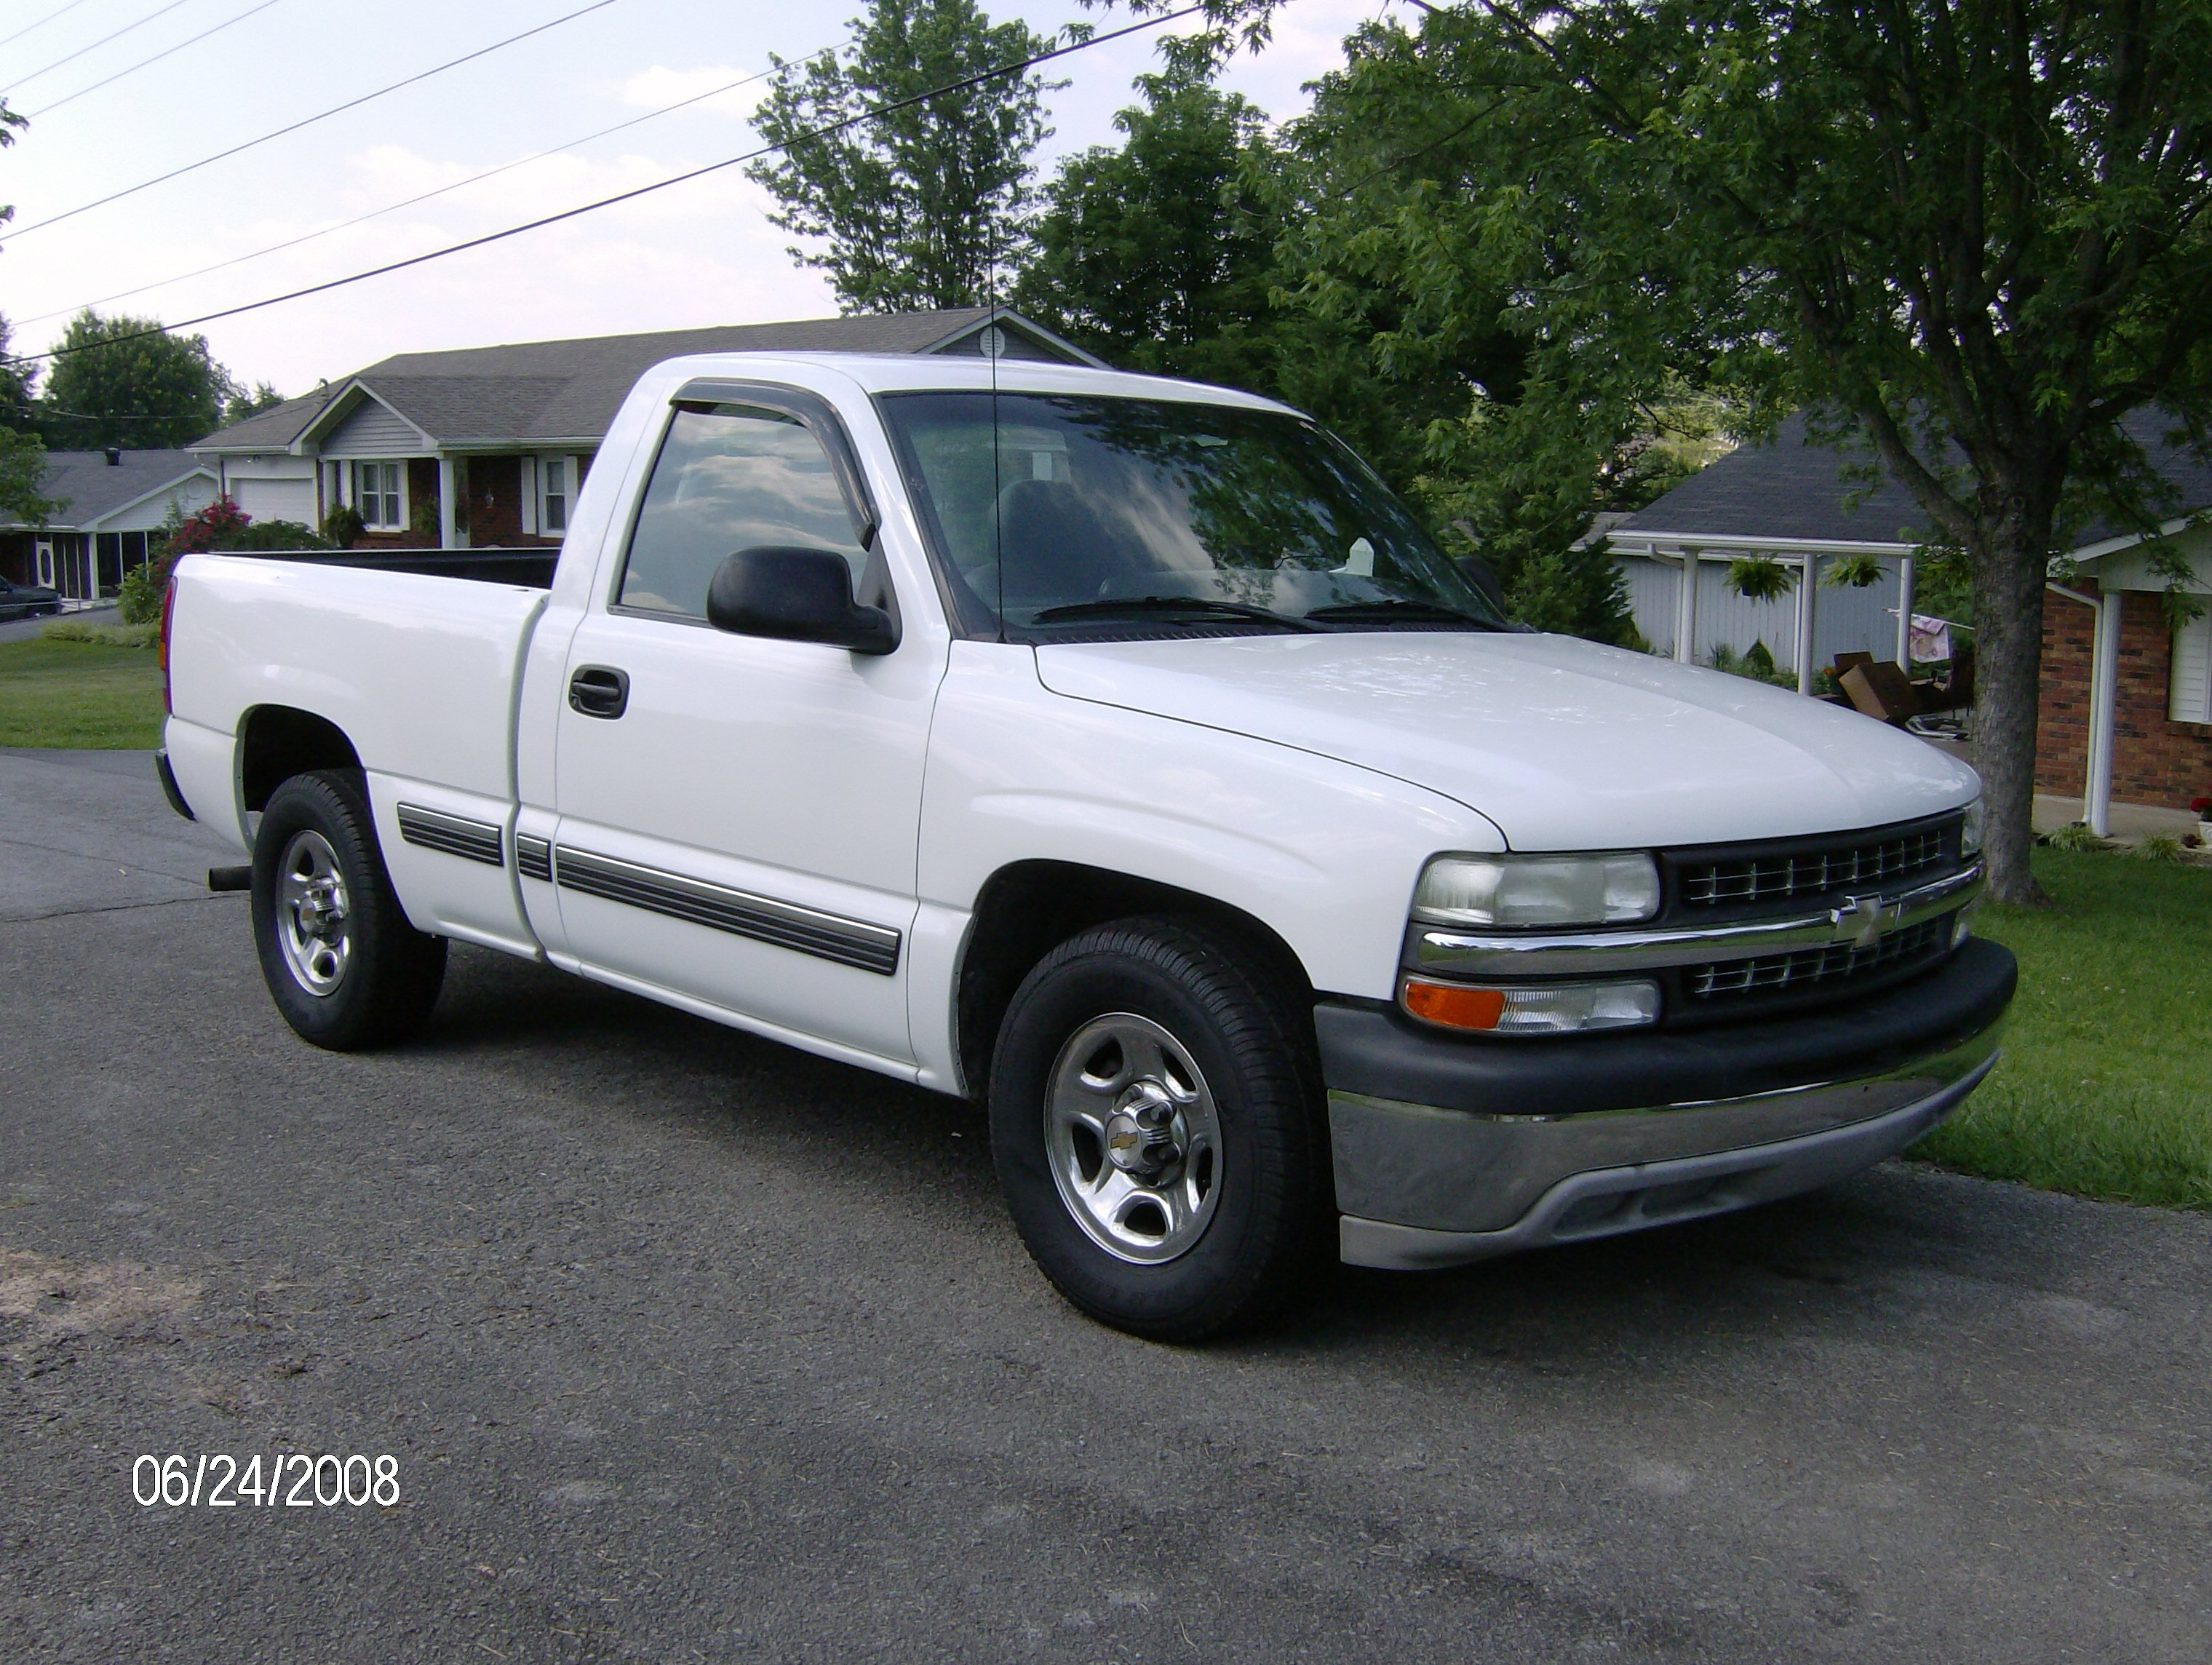 kejessie 2000 chevrolet silverado 1500 regular cab specs photos modification info at cardomain. Black Bedroom Furniture Sets. Home Design Ideas